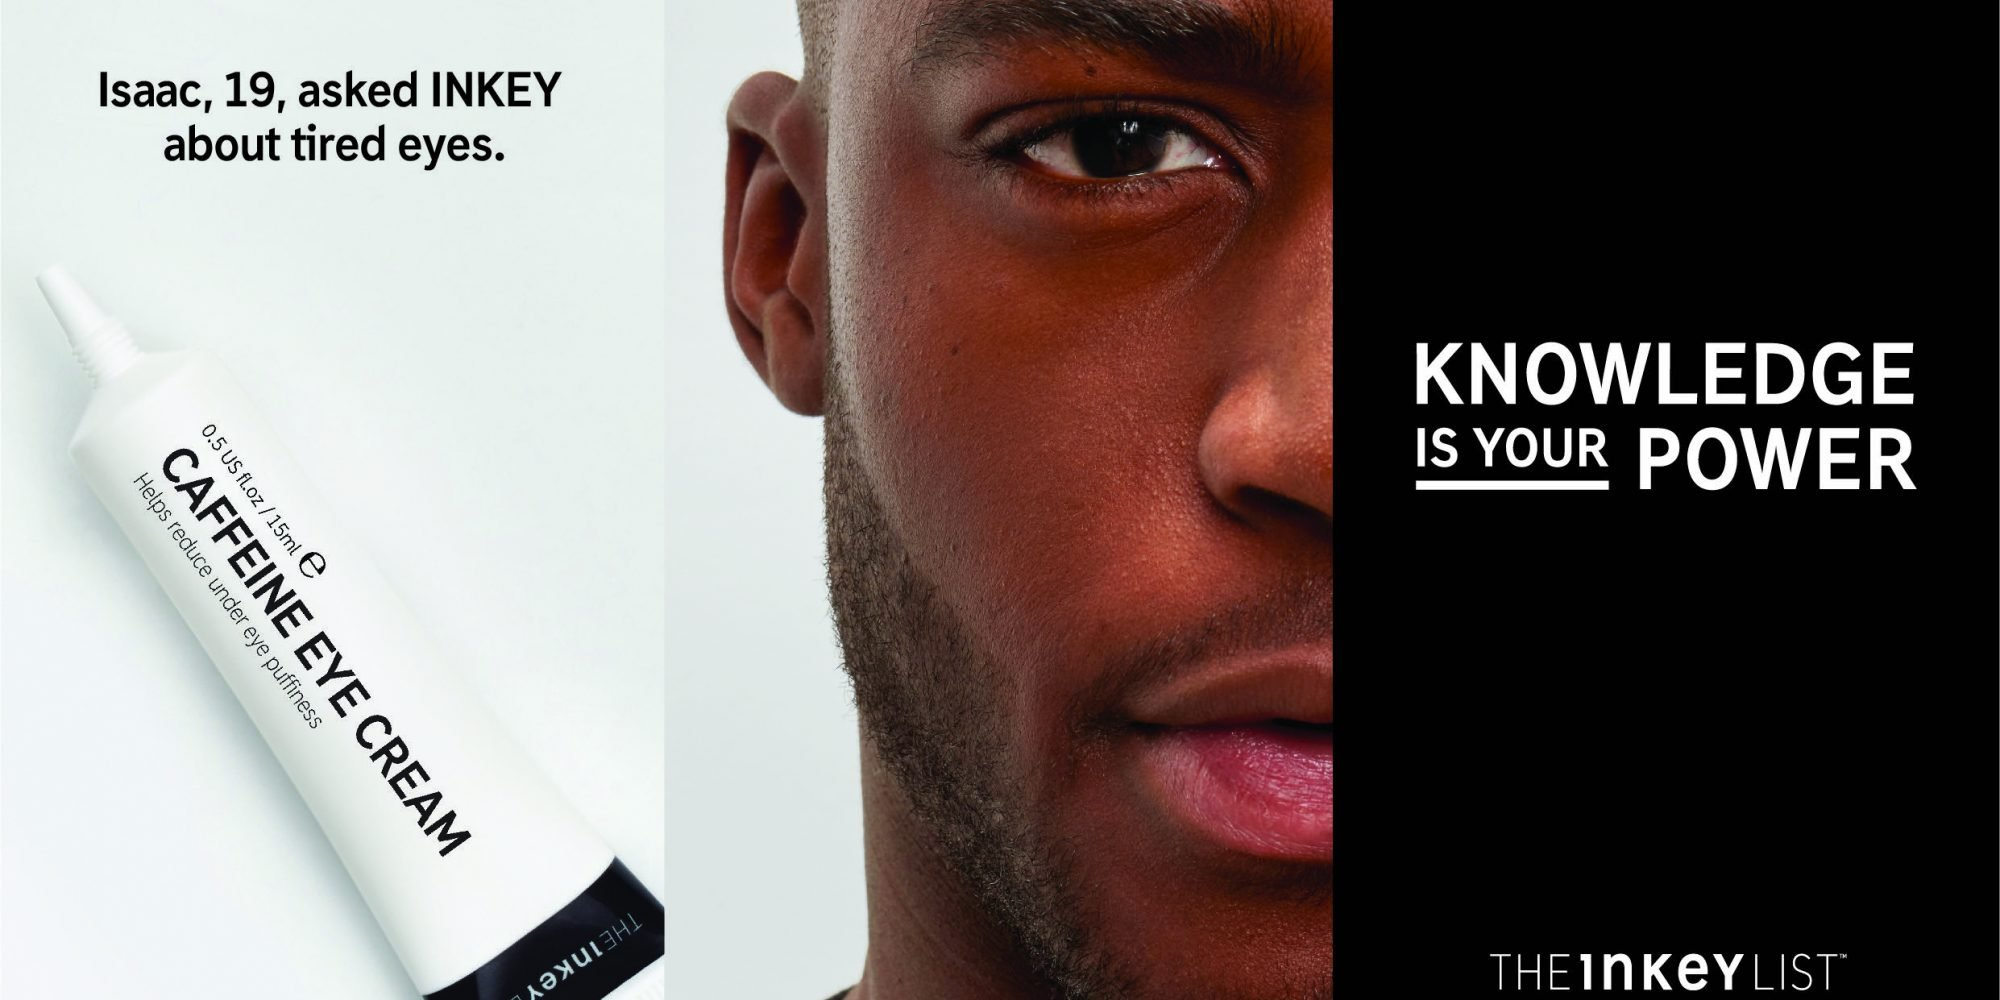 Embarking On Its First Major Digital Campaign, The Inkey List Is Out To Raise Consumers' Skincare IQ